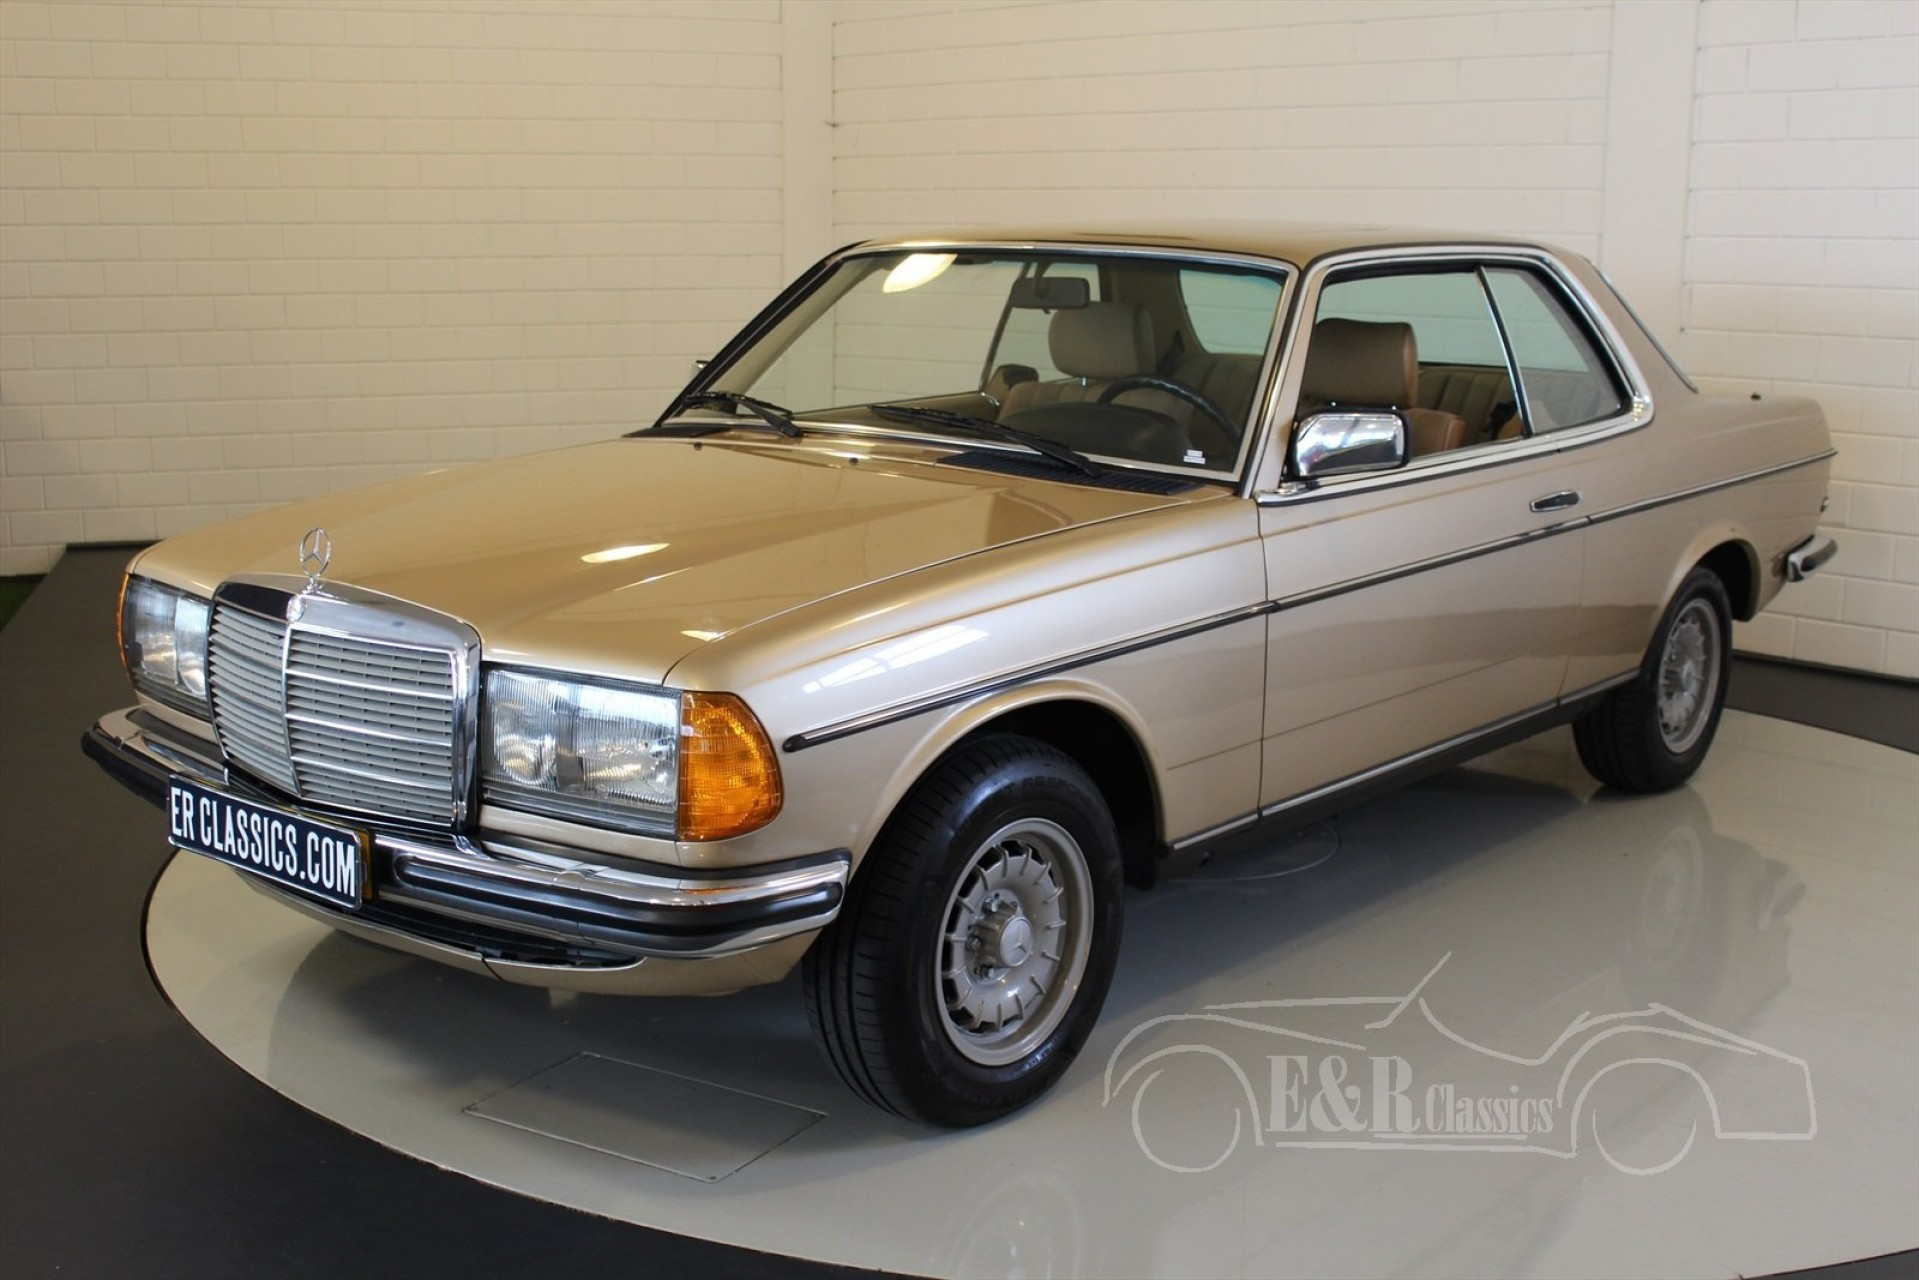 Mercedes benz 230ce coupe 1984 for sale at erclassics for 1984 mercedes benz